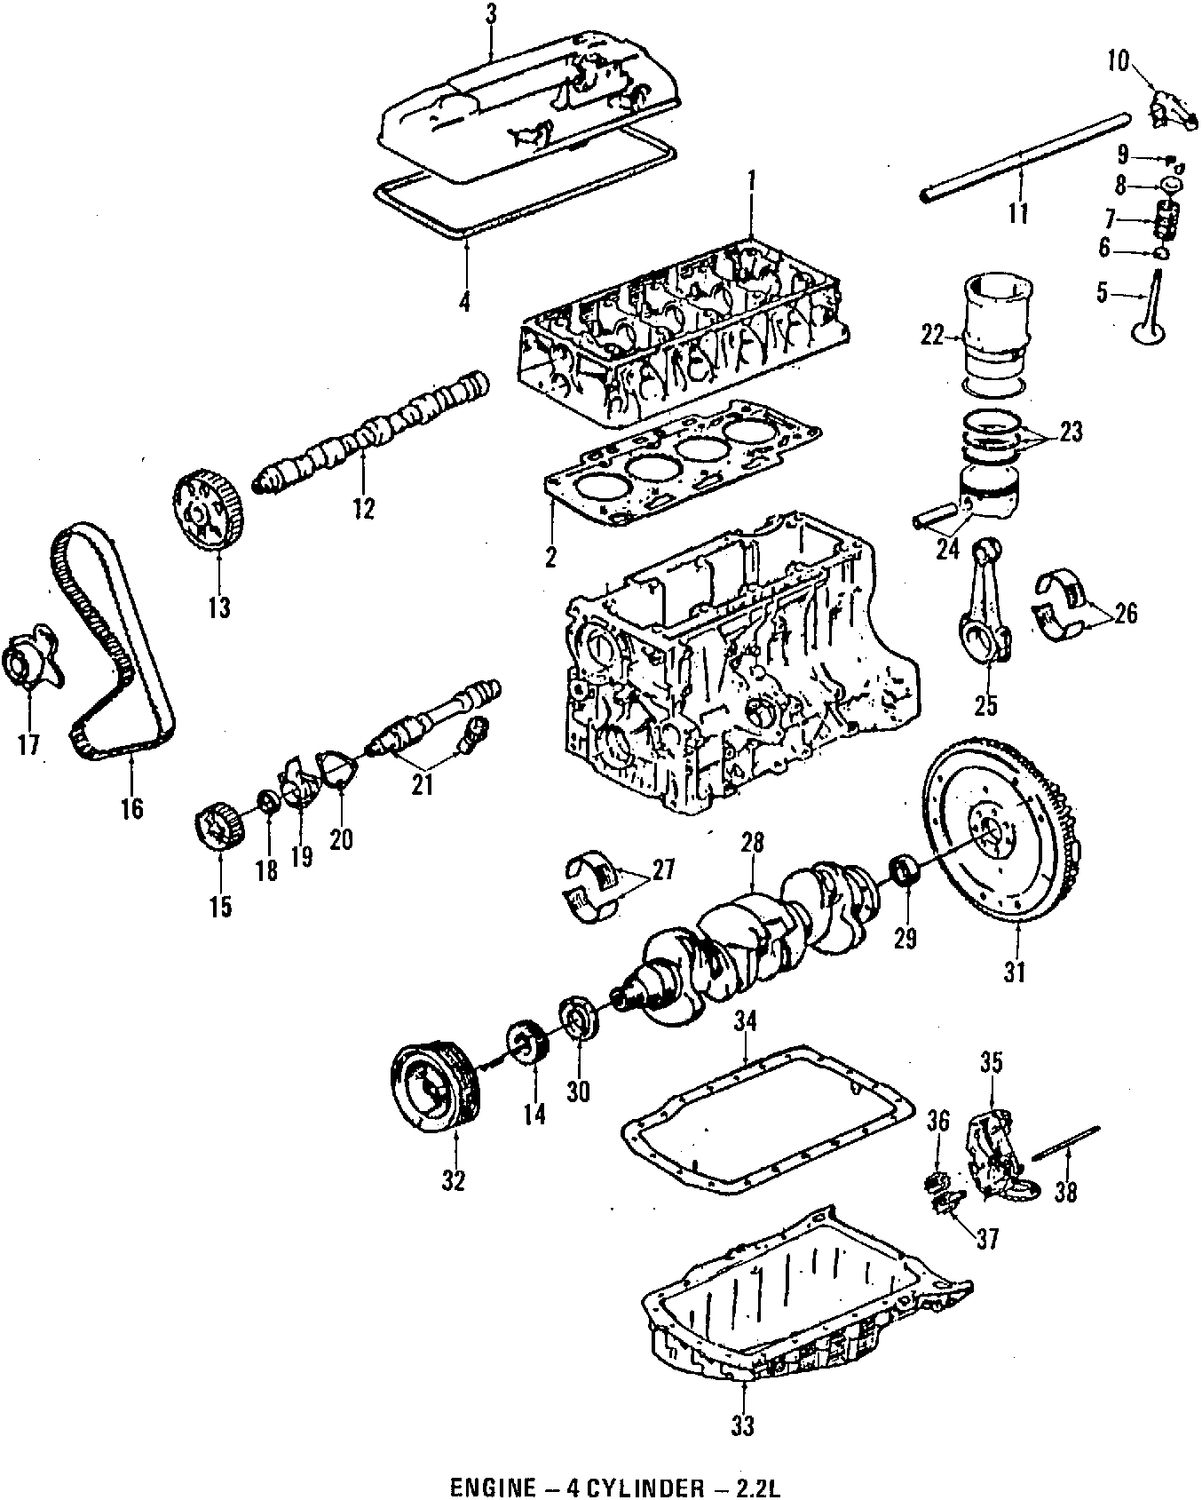 1965 comet wiring diagram